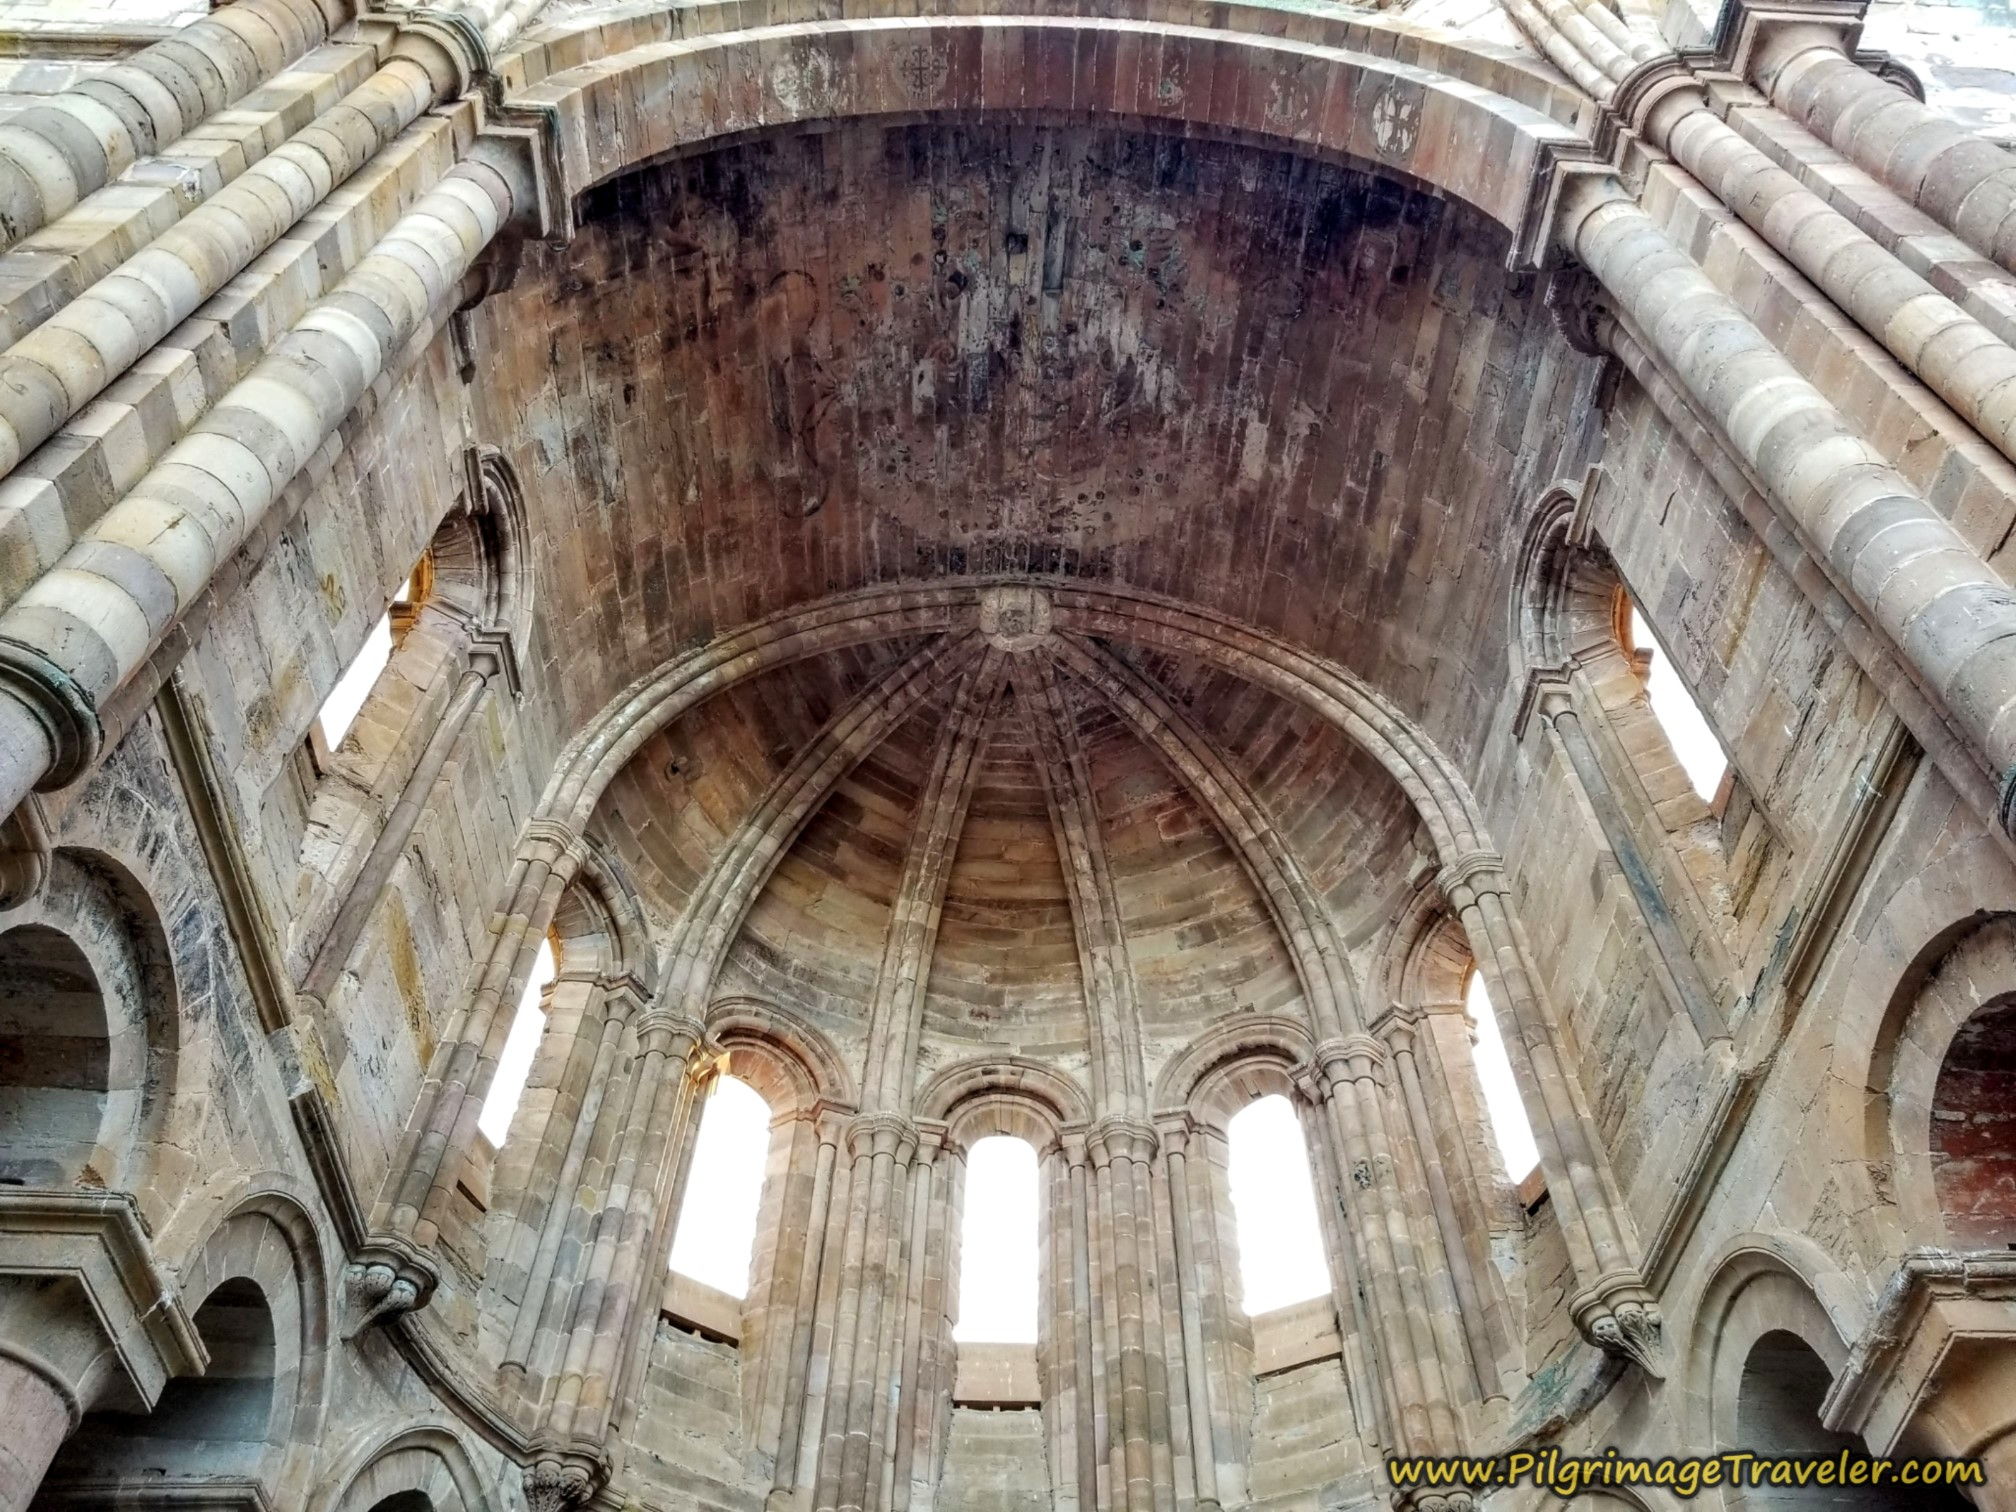 Upper Storey of the Cathedral Apse of the Monasterio Moreruela on the Camino Sanabrés